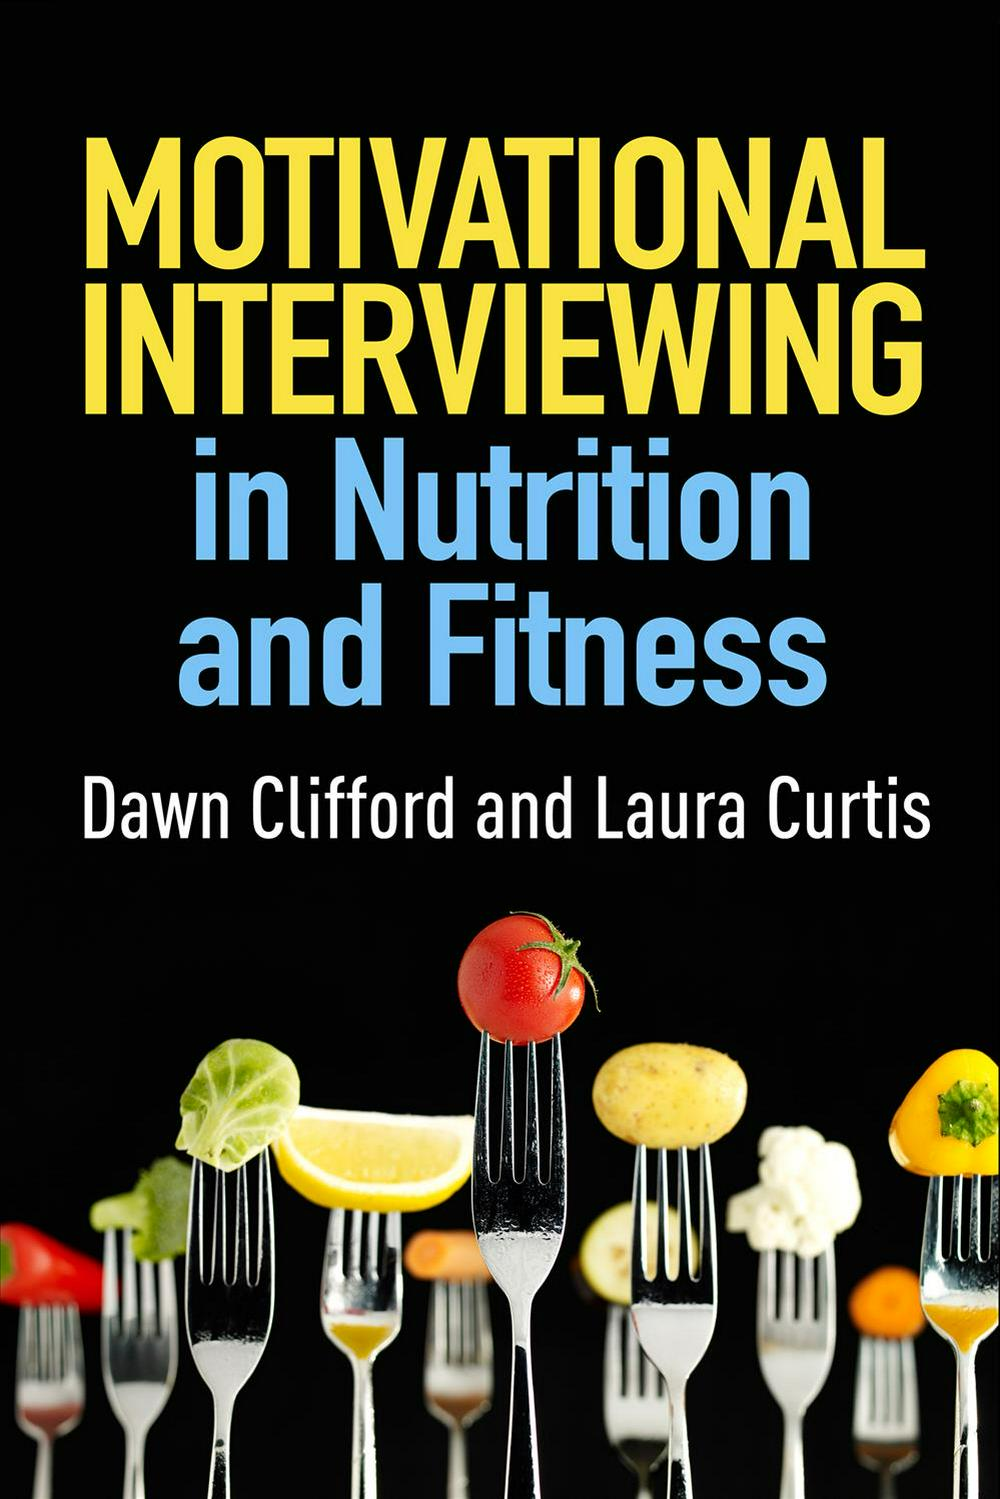 Motivational Interviewing in Nutrition and Fitness (Applications of Motivational Interviewing (Paperback)) by Dawn Clifford, ISBN: 9781462524181